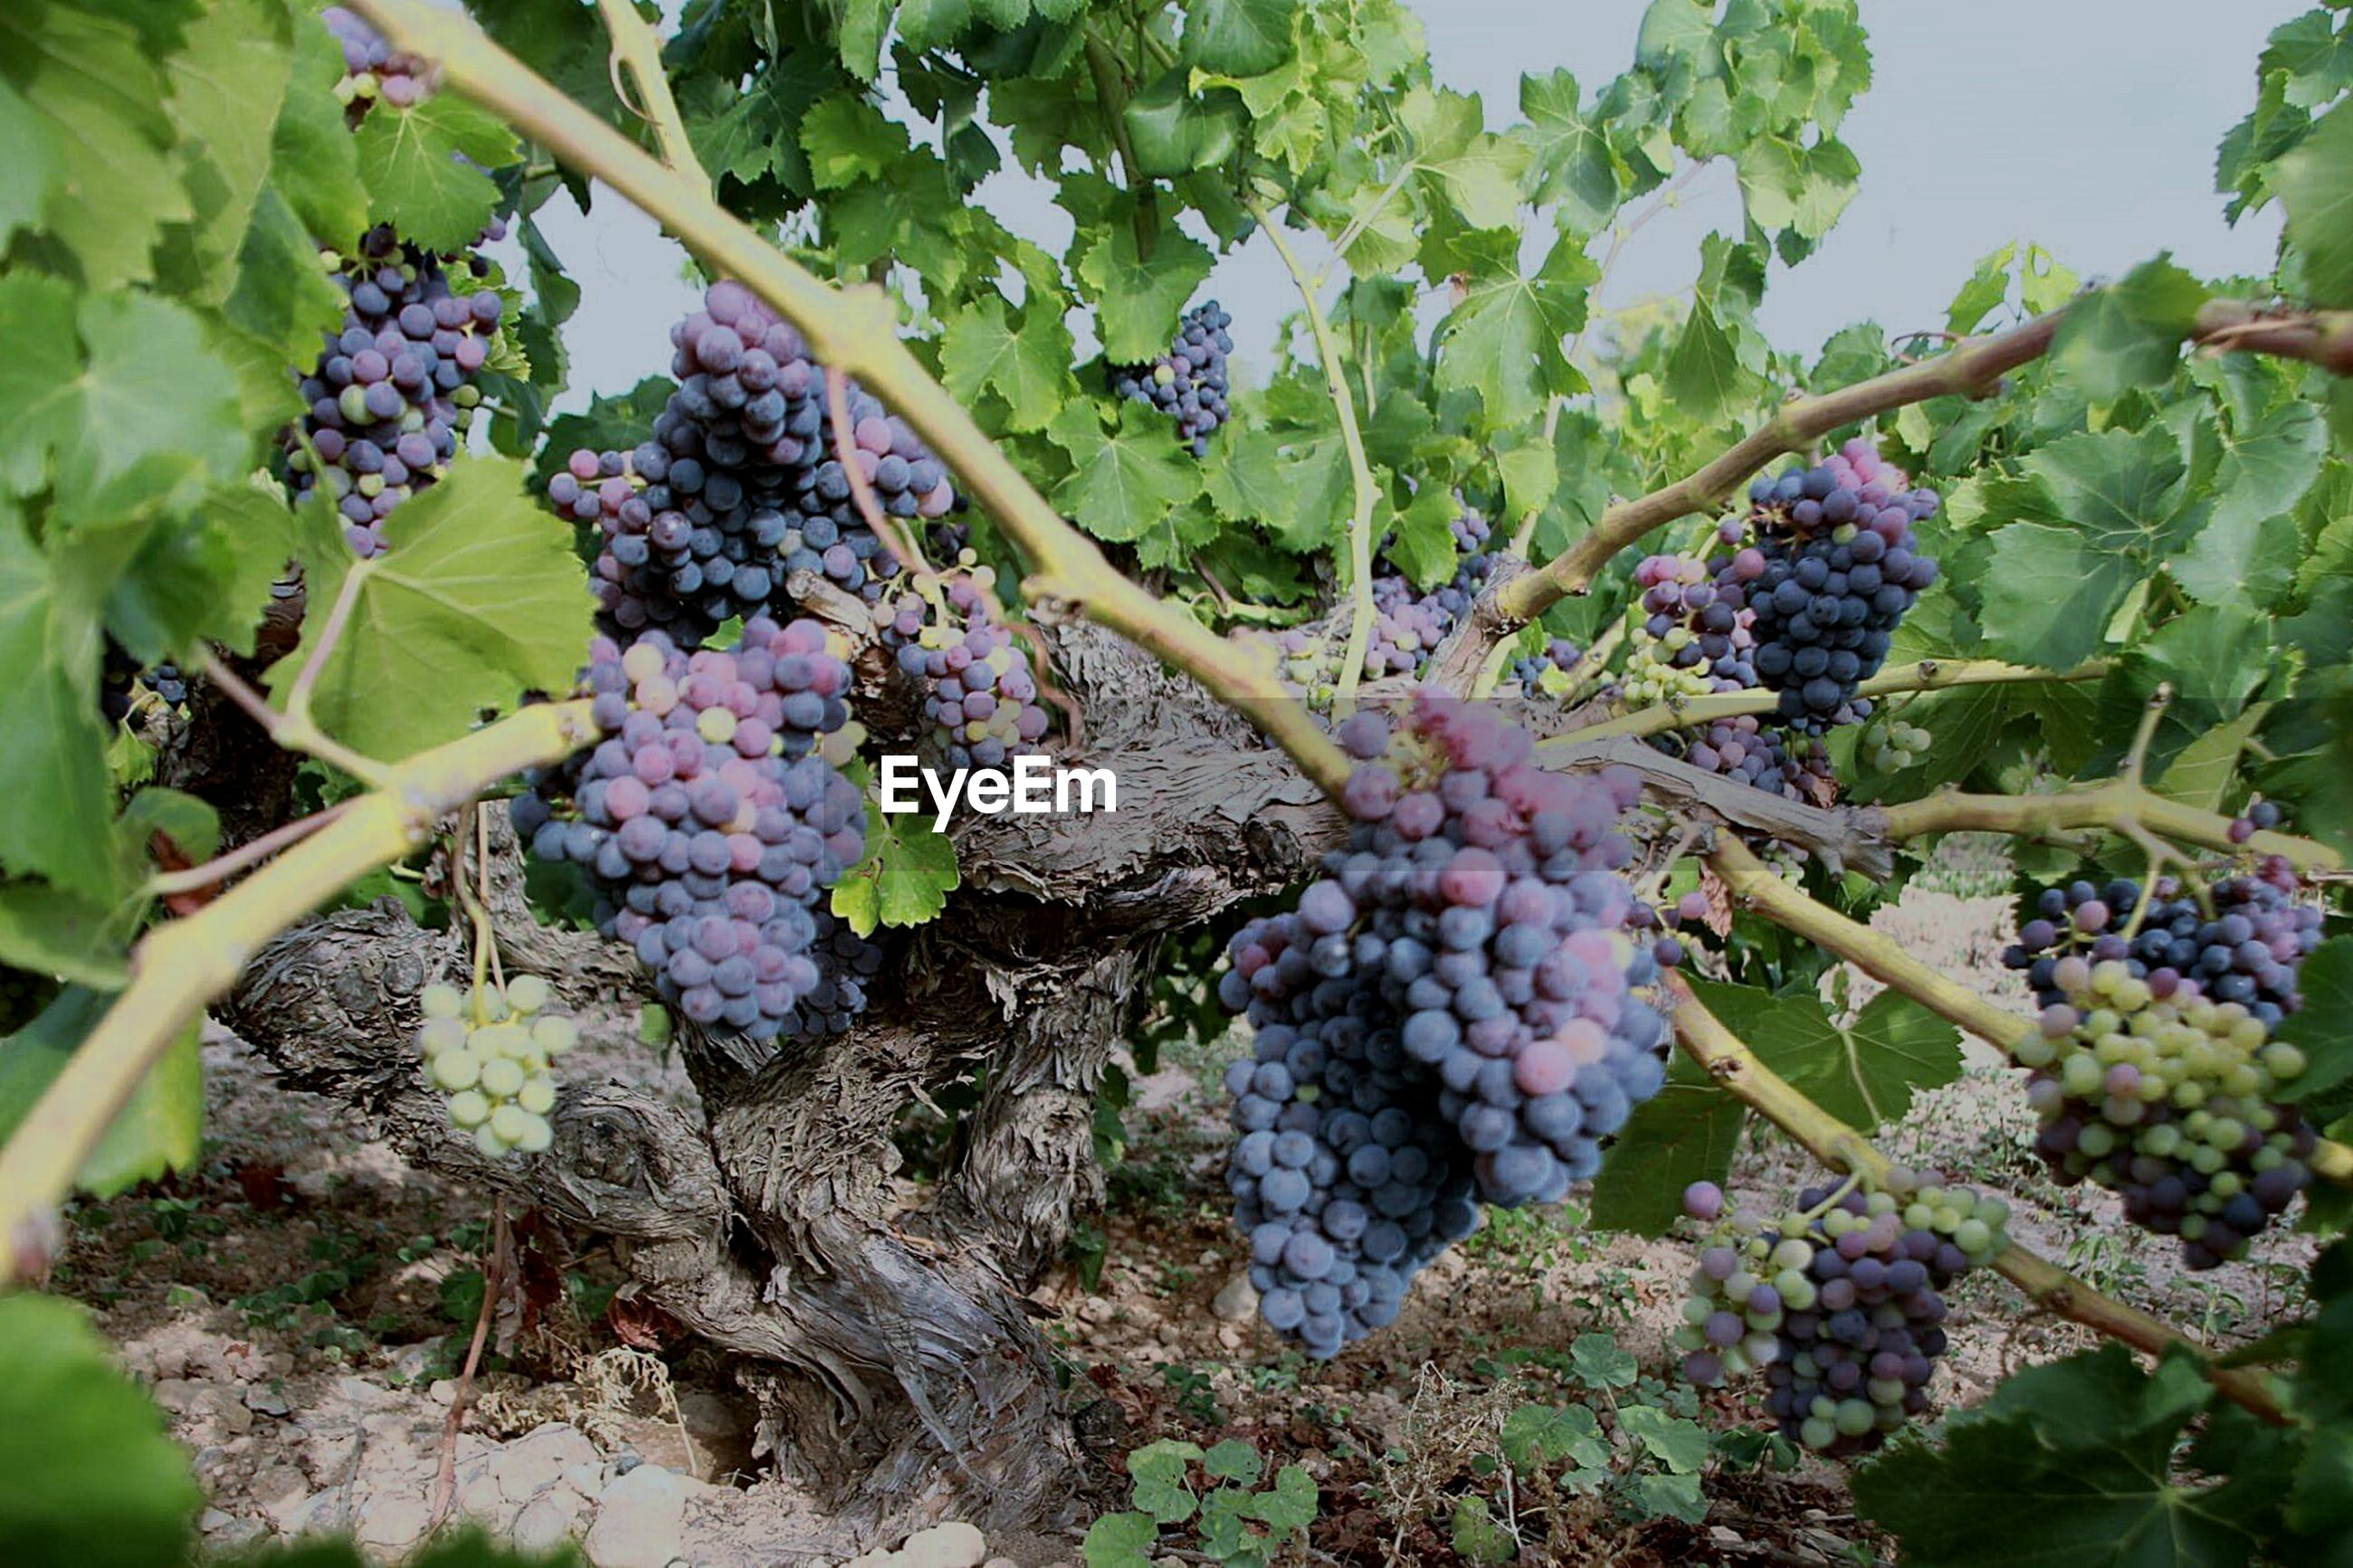 growth, freshness, plant, leaf, fruit, nature, flower, purple, beauty in nature, green color, growing, food and drink, close-up, food, hanging, day, stem, outdoors, healthy eating, tree